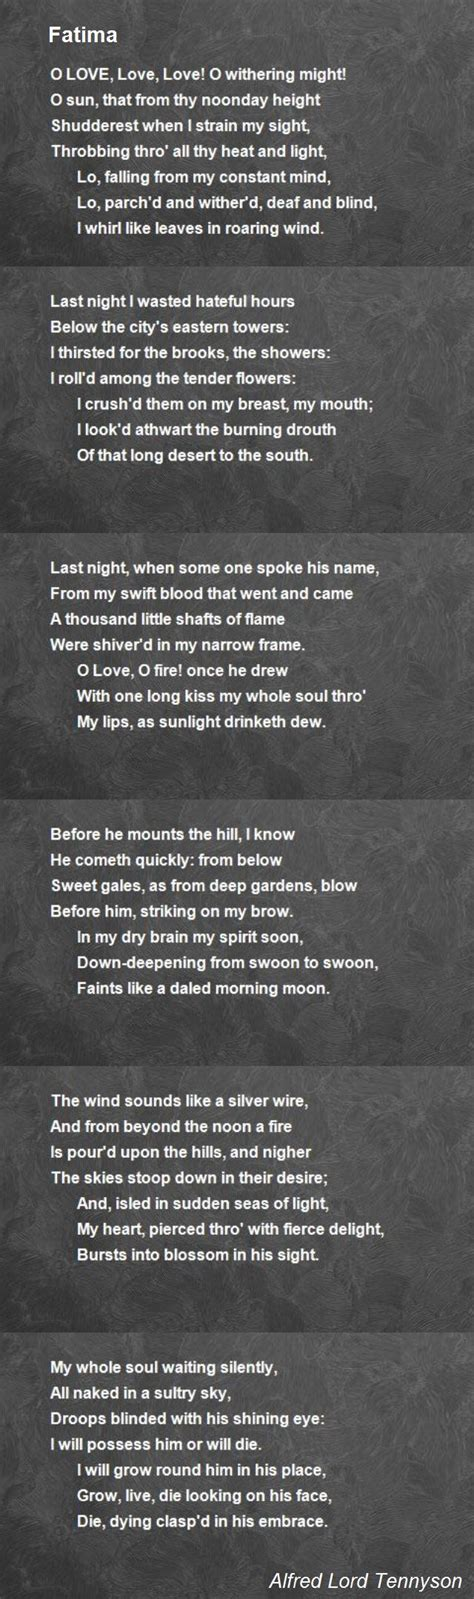 brain s name poem by iiriver of blood on deviantart fatima poem by alfred lord tennyson poem